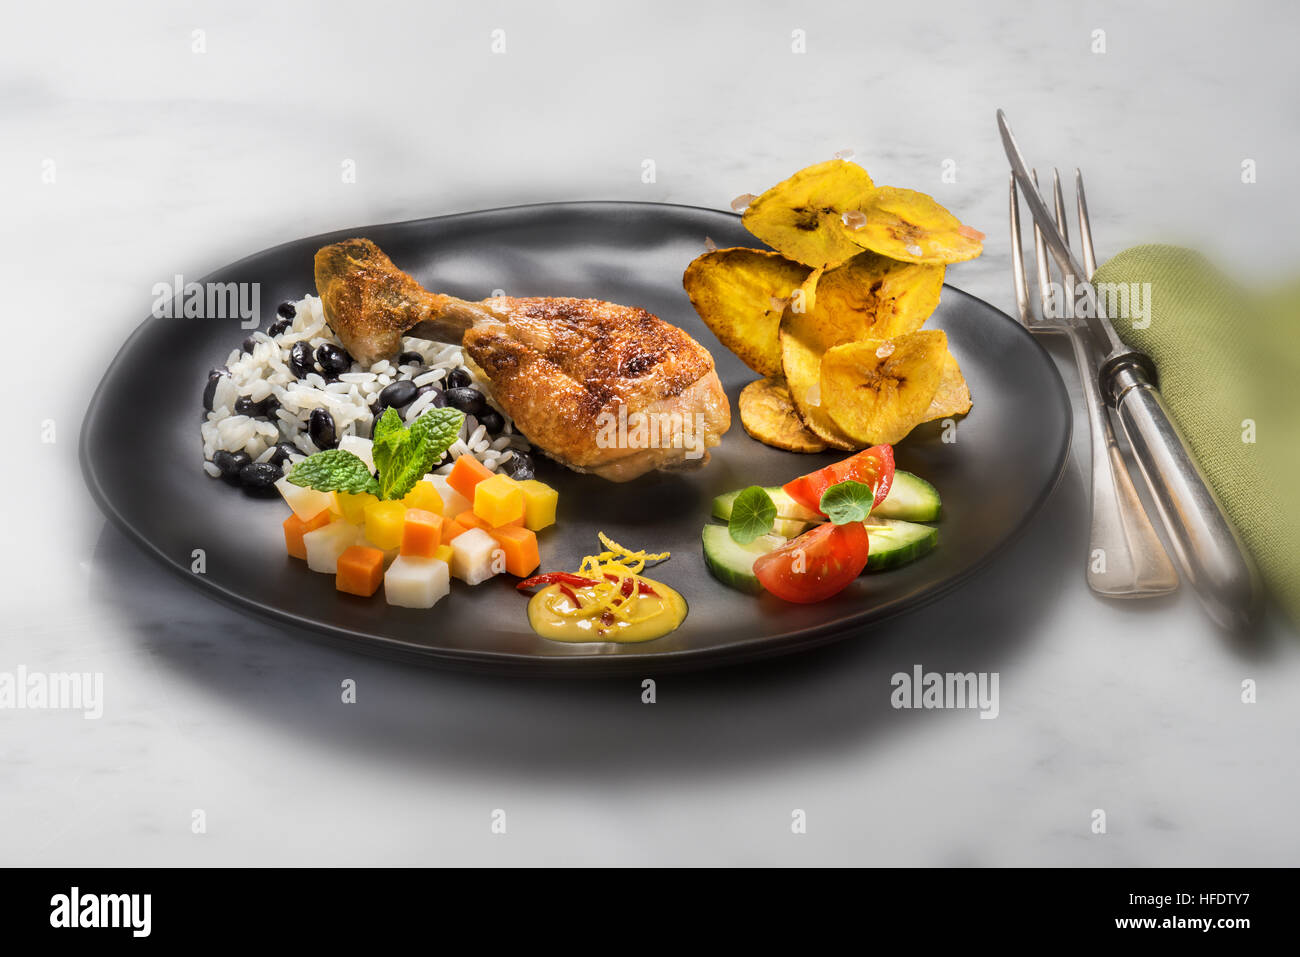 Typical Cuban food, chicken, rice with black beans, fried banana chips, salad and vegetables. CUBA. kuba FOOD Style - Stock Image